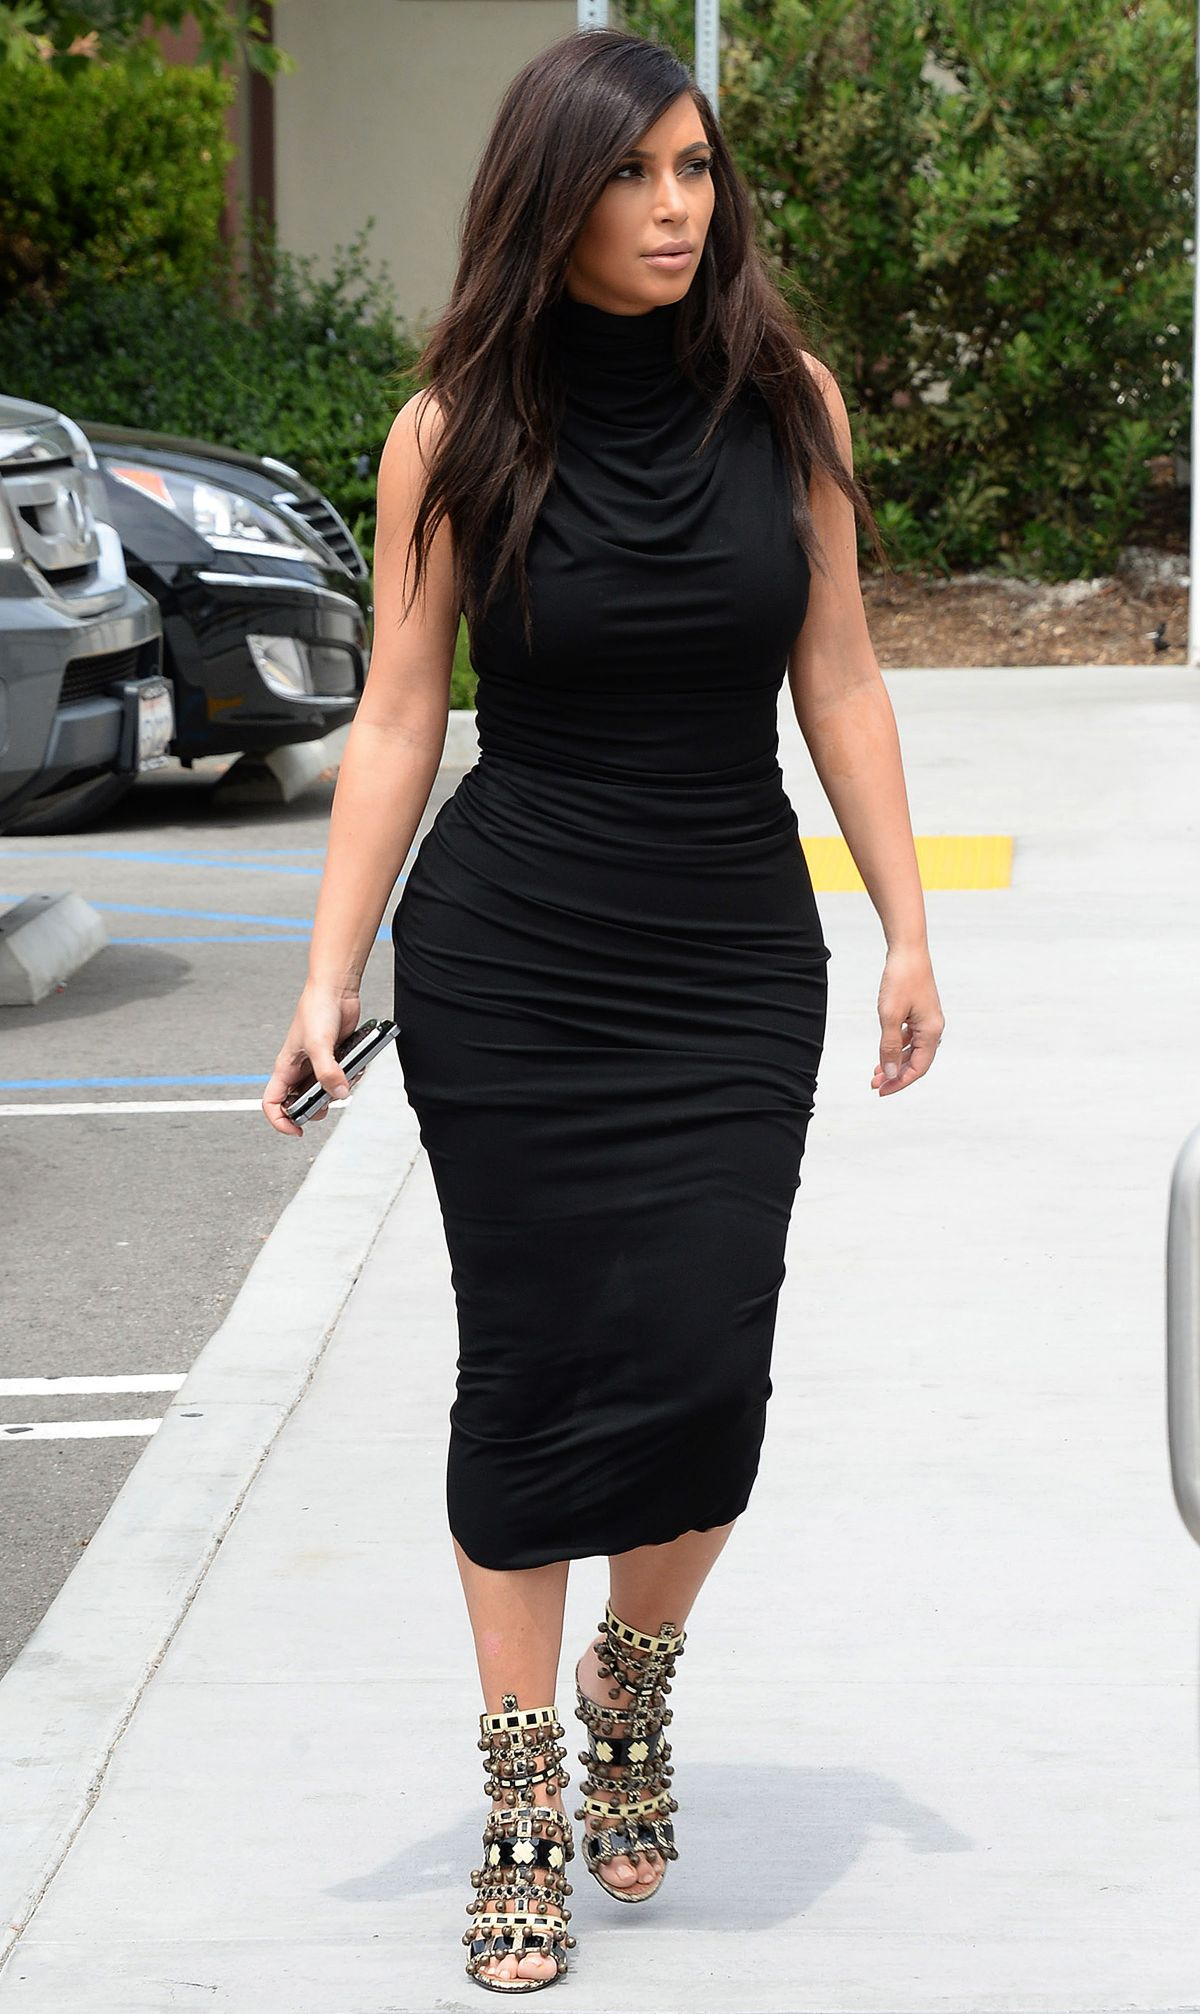 Kim Kardashian weight, height and age. We know it all!